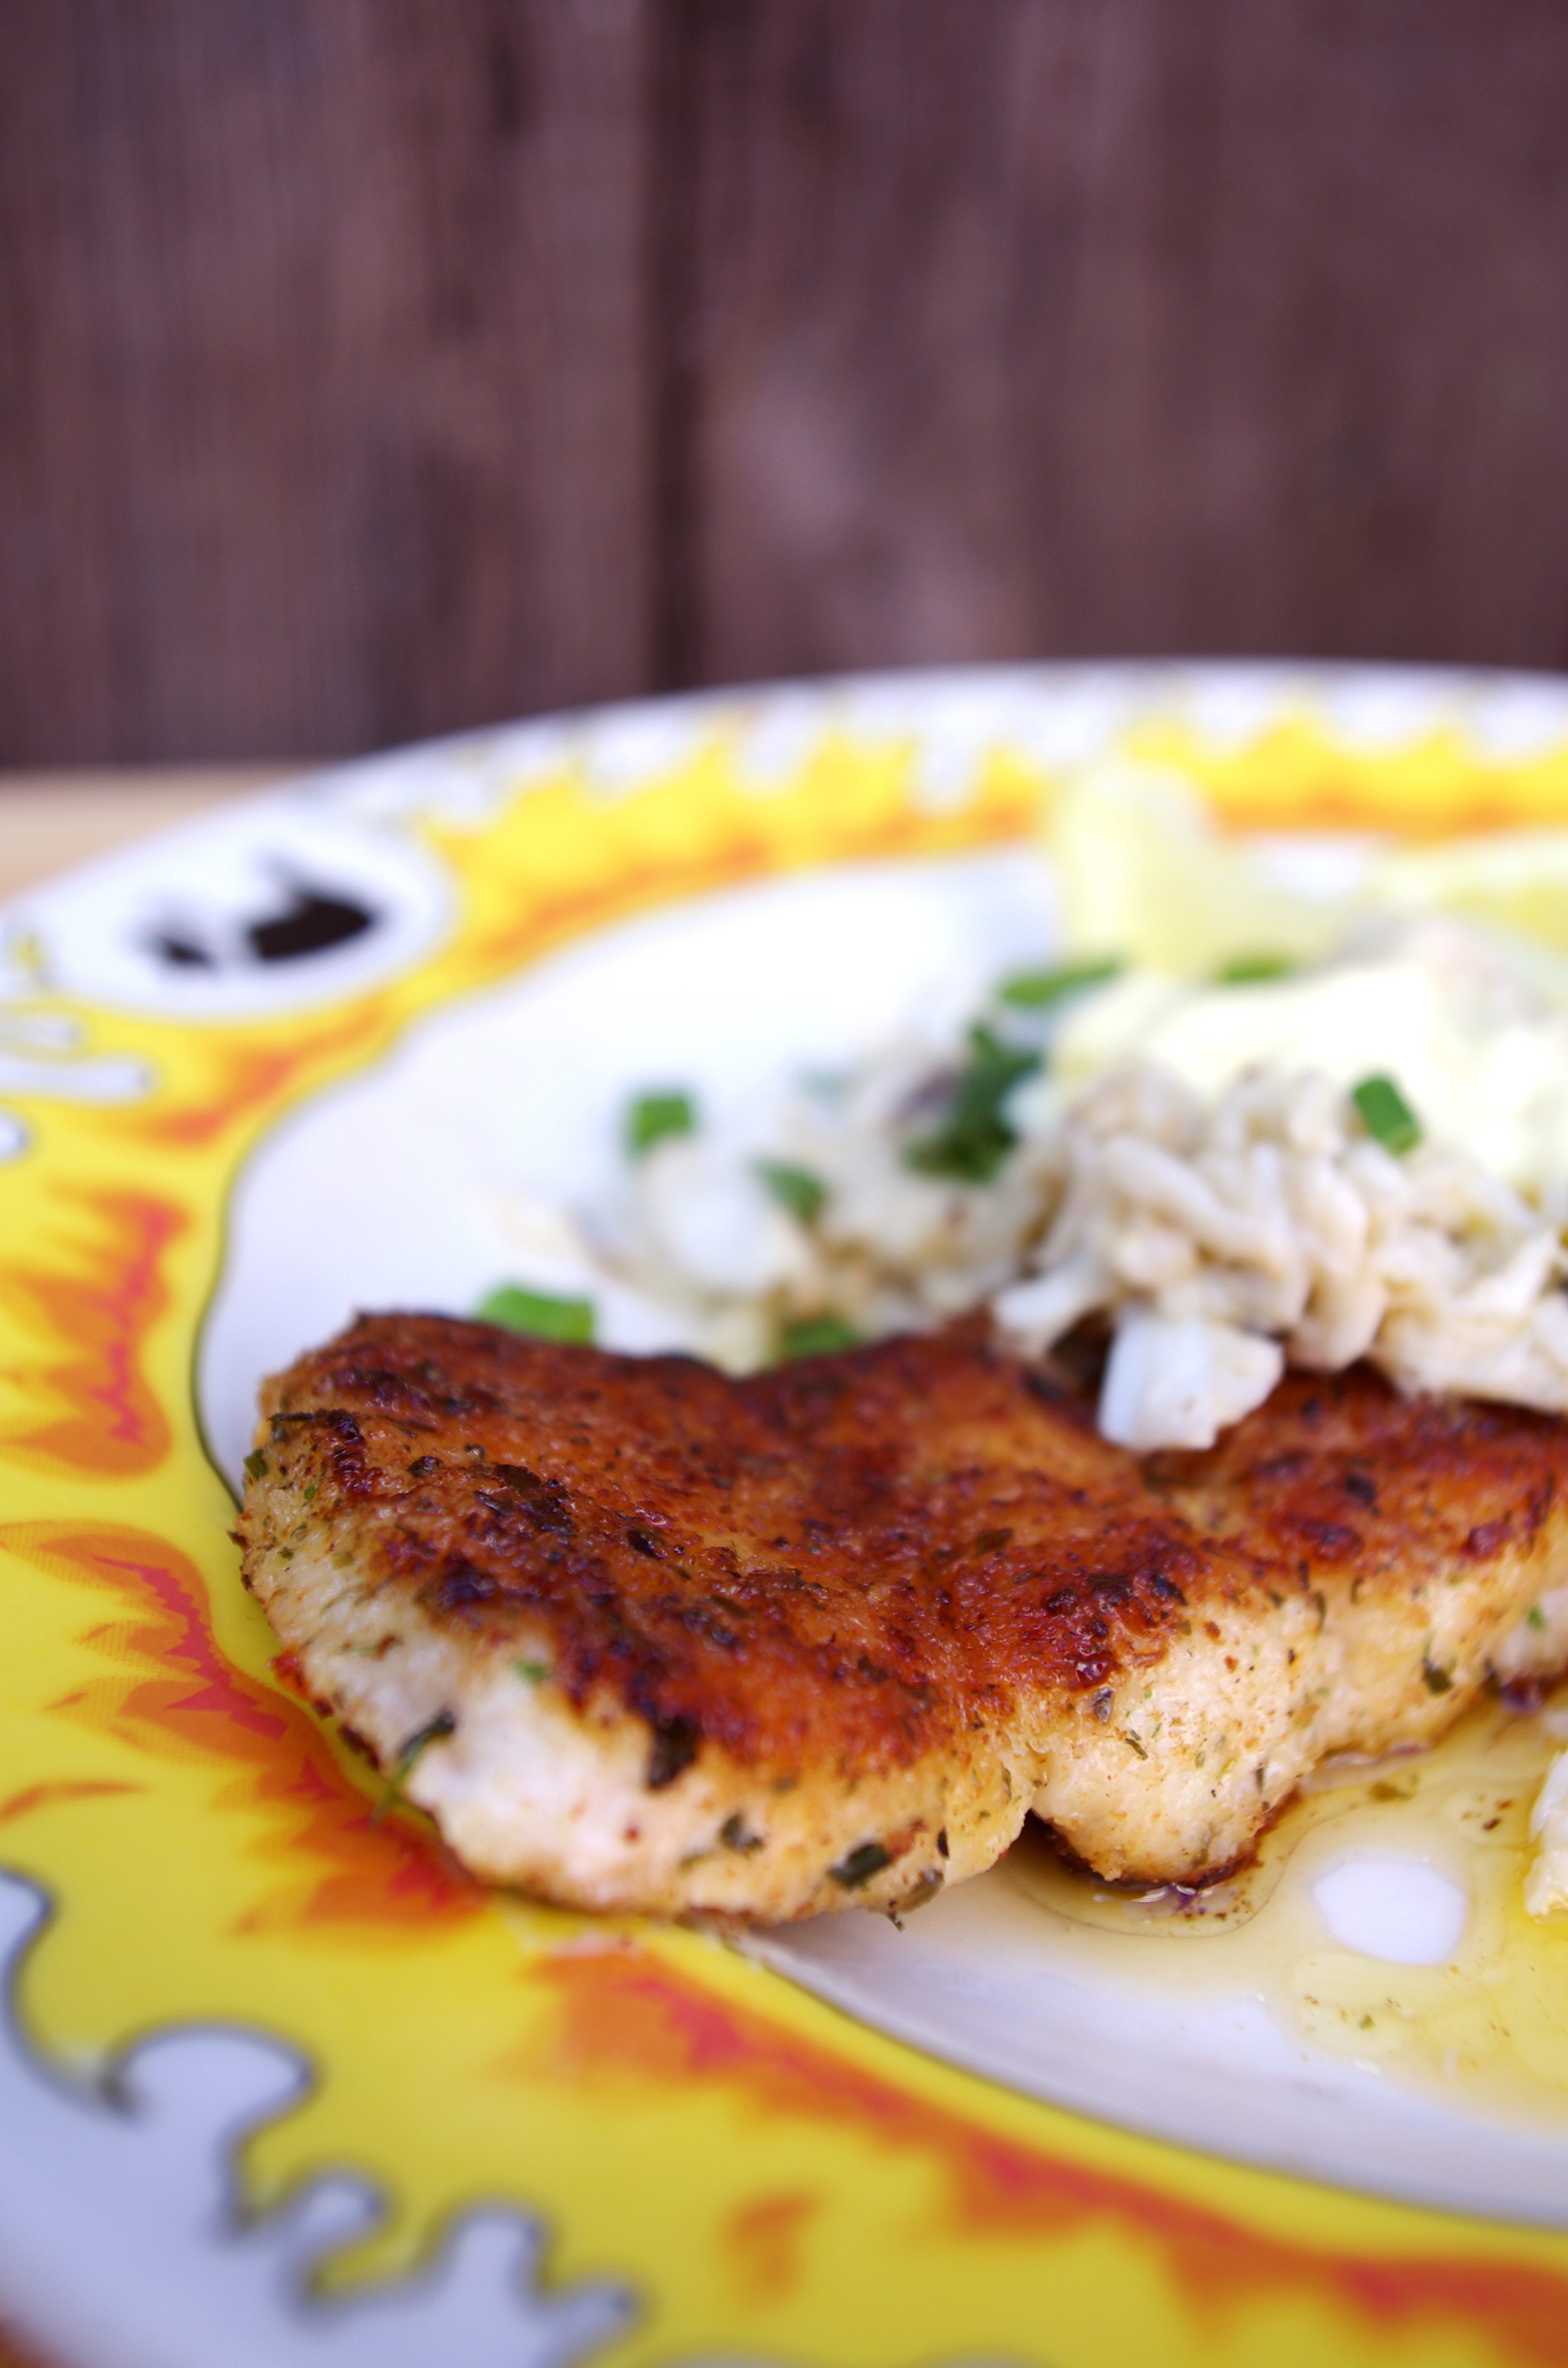 Grilled snapper with sauteed crabmeat.